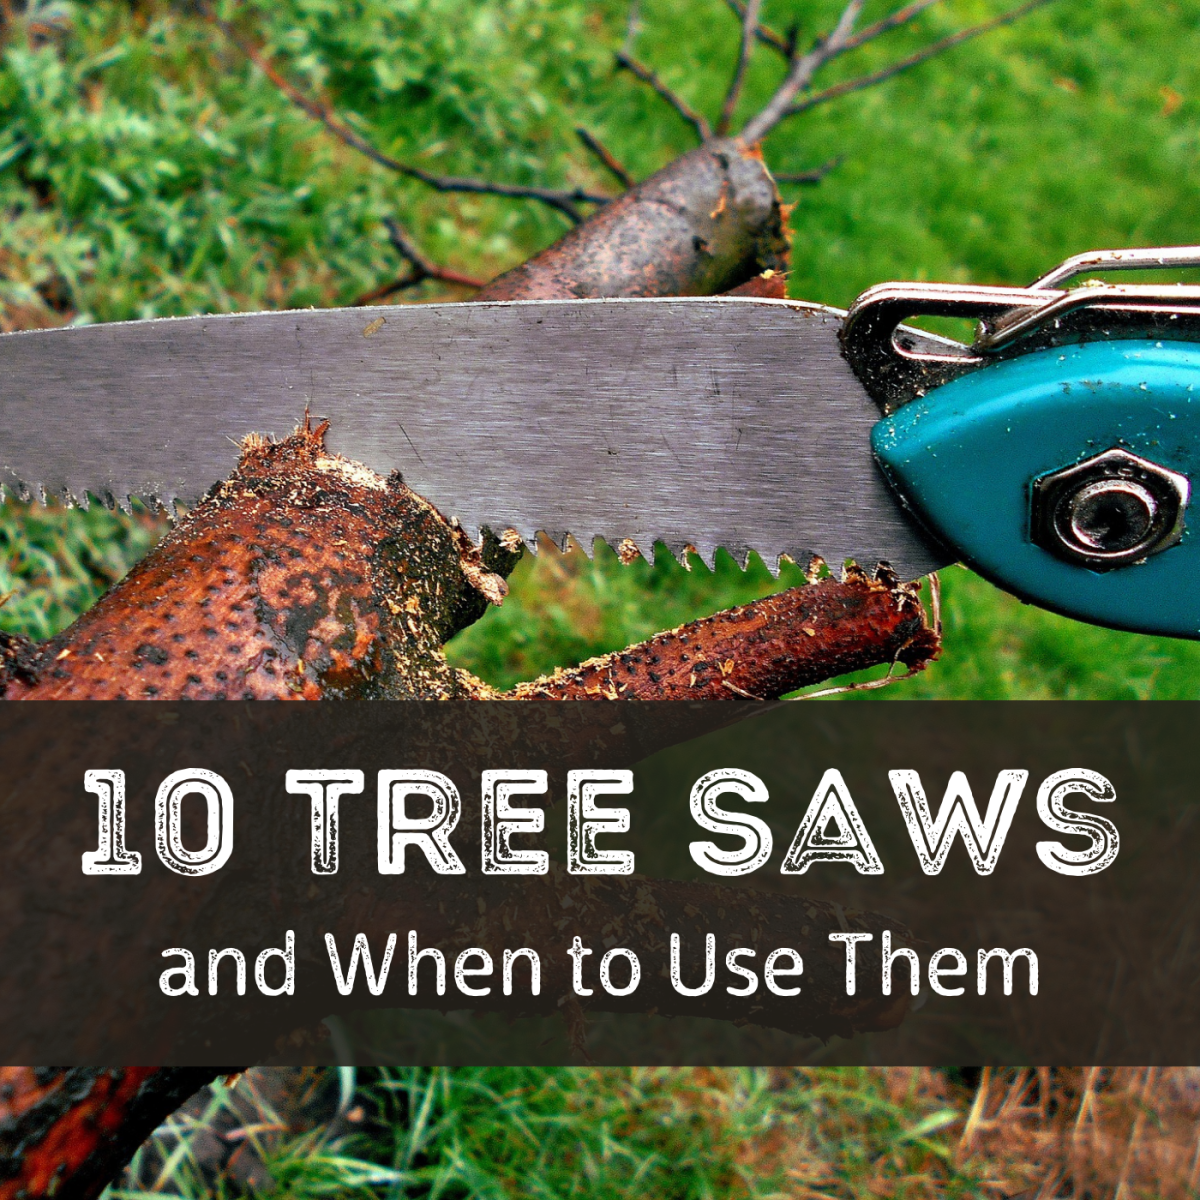 Discover 10 types of handy saws and which gardening tasks you should use them for.